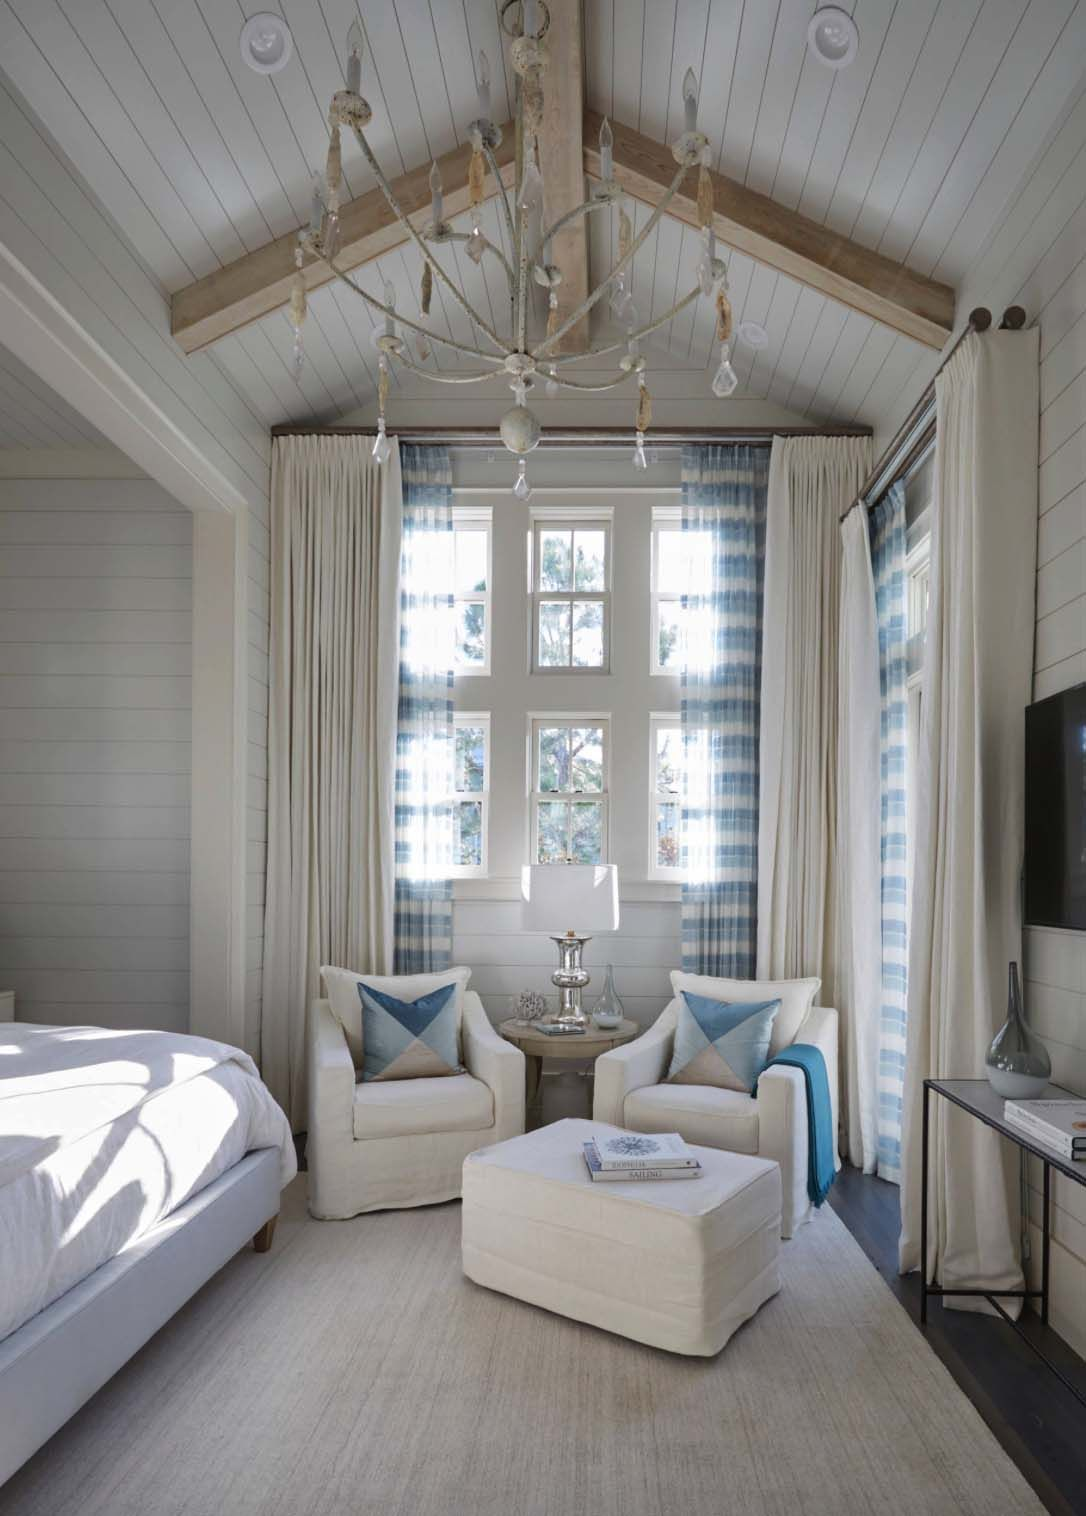 Beach house in WaterColor offers dreamy seainspired